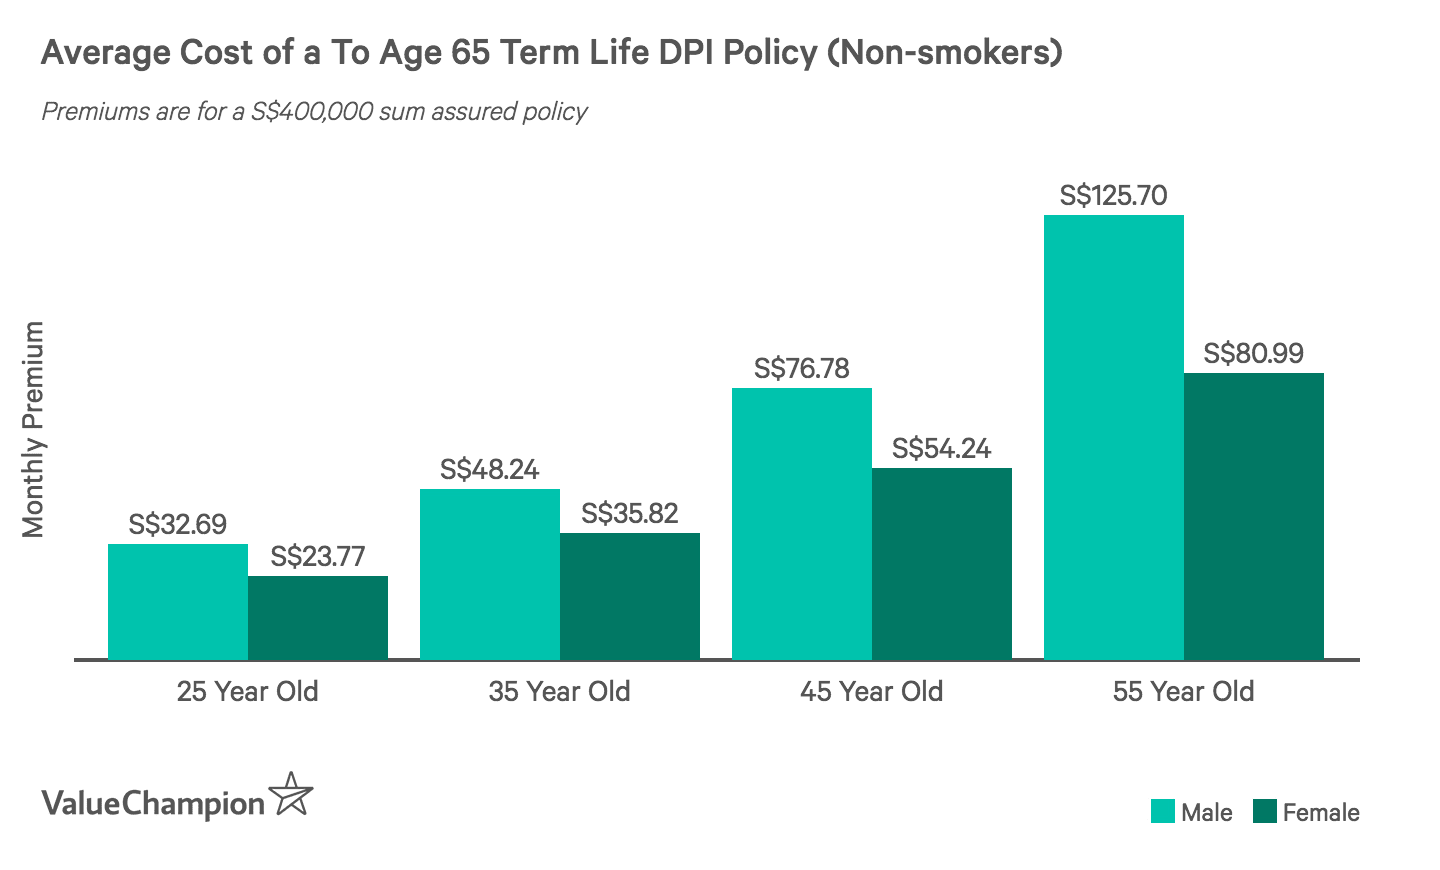 This graph shows the monthly premiums of a S$400,000 up to age 65 term life DPI policy for non-smoking males and females